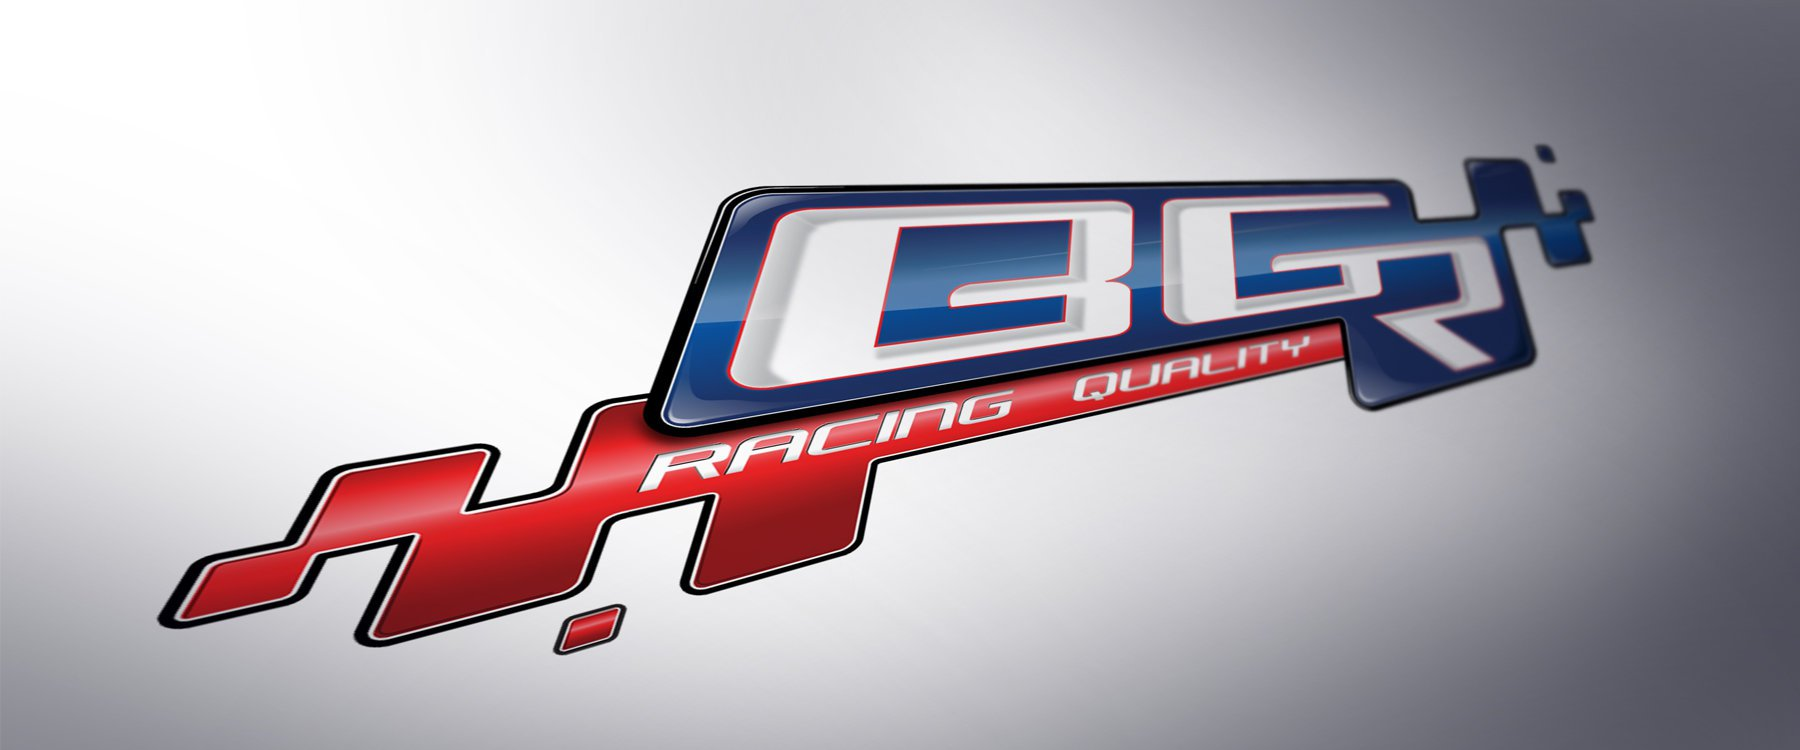 BGR Racing Quality #2